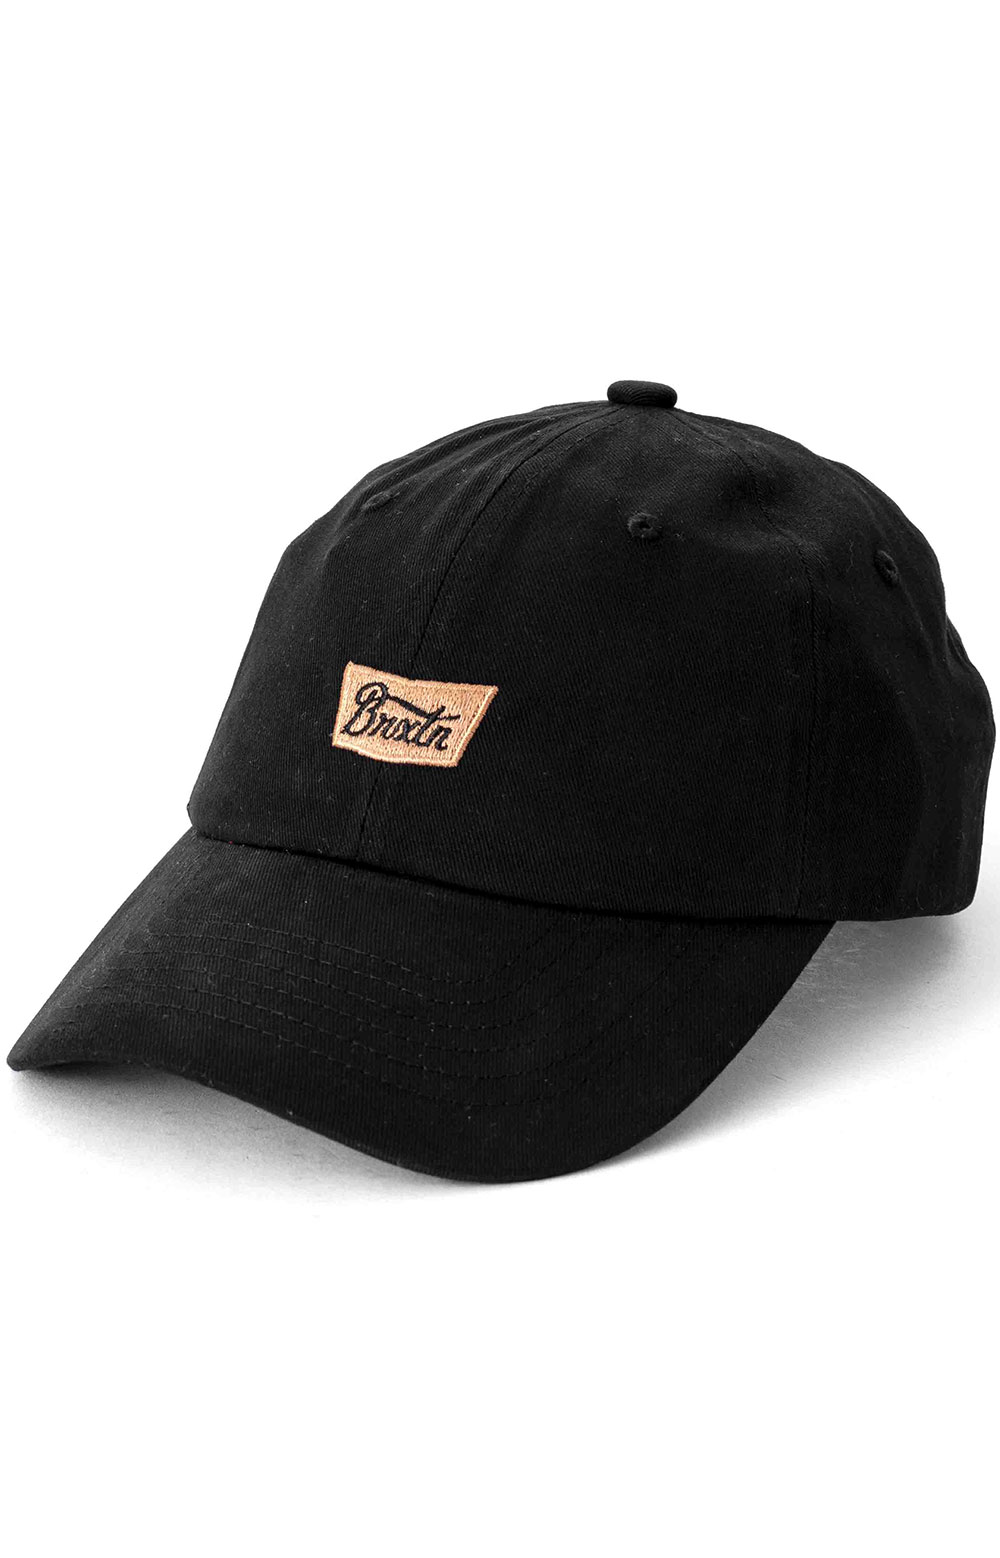 Stith LP Cap - Black